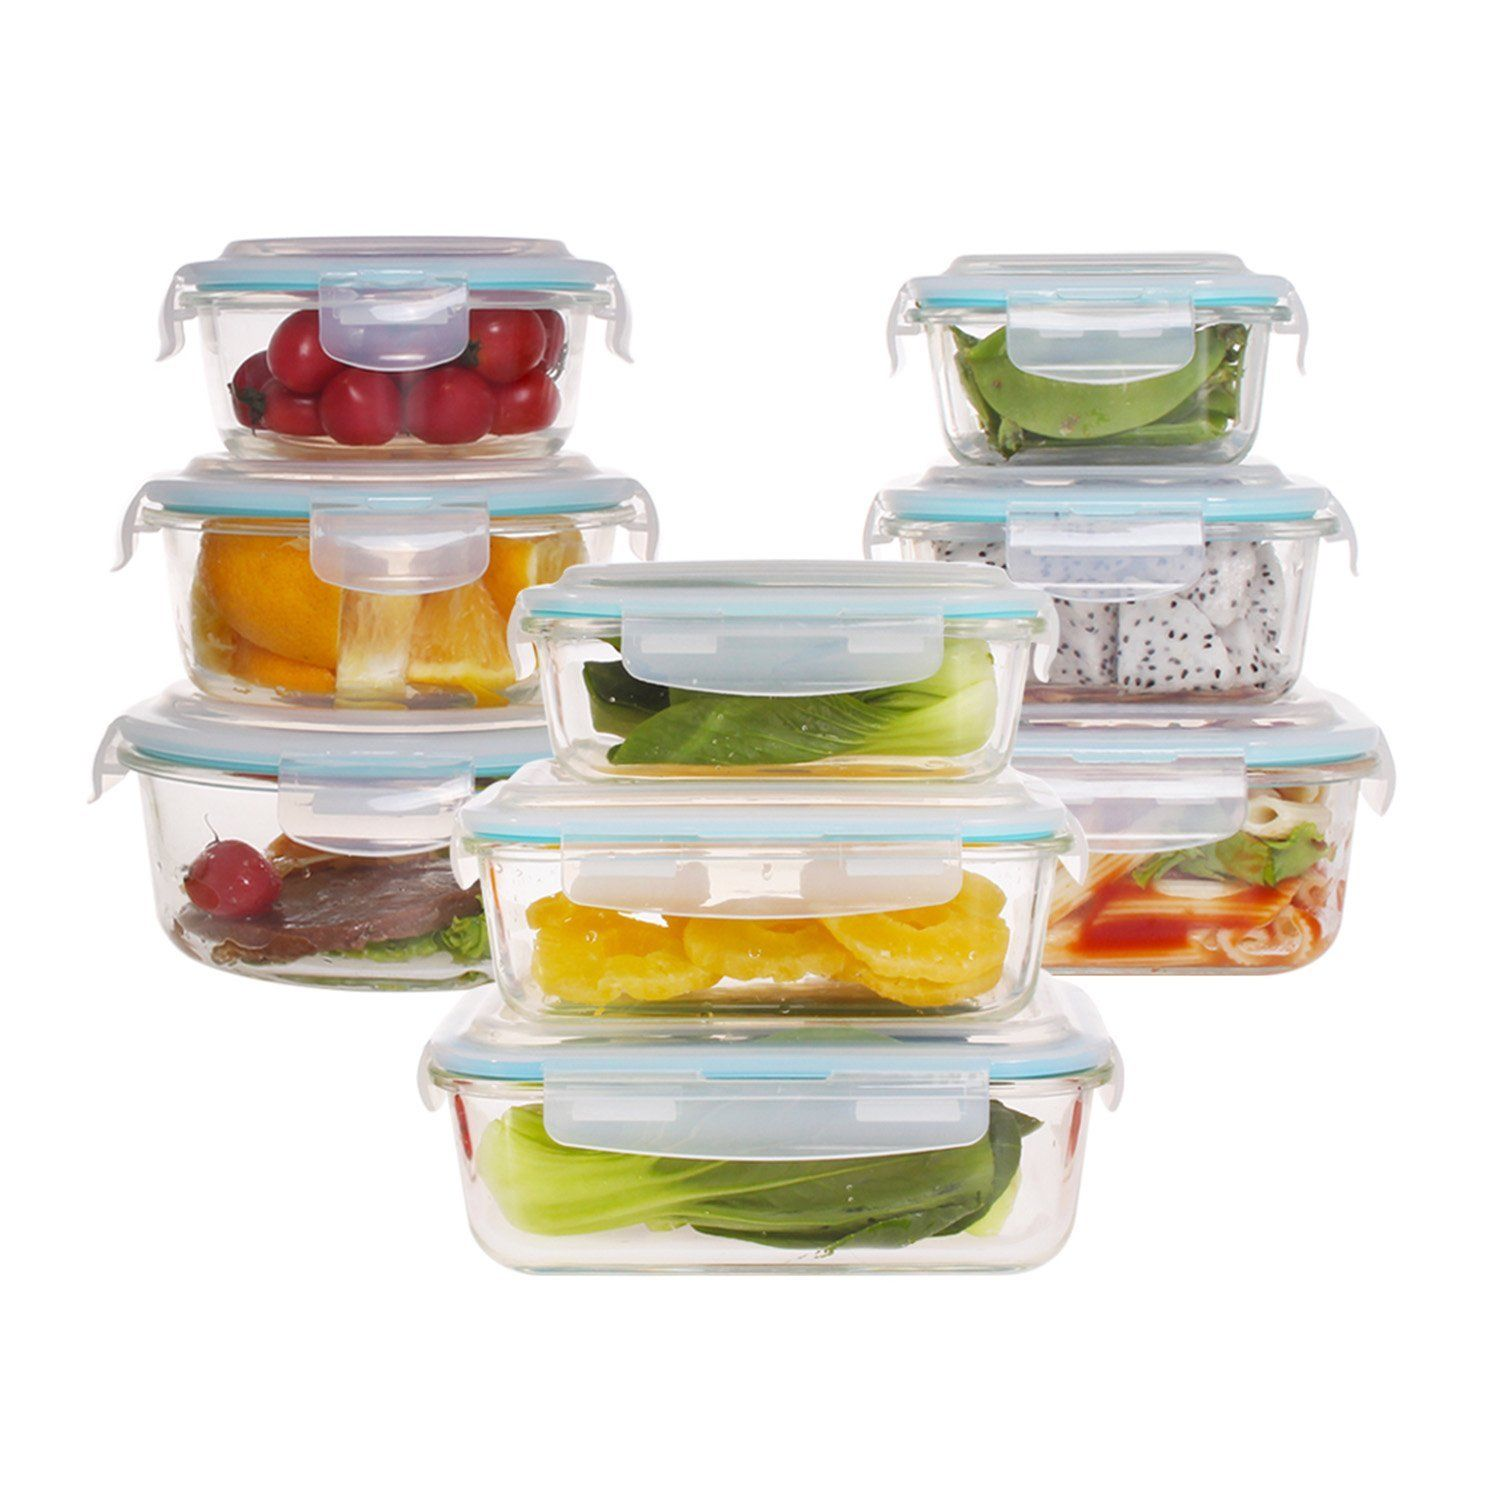 18-piece Glass Food Storage Container Set with Airtight Locking Lids Glass, Meal 1